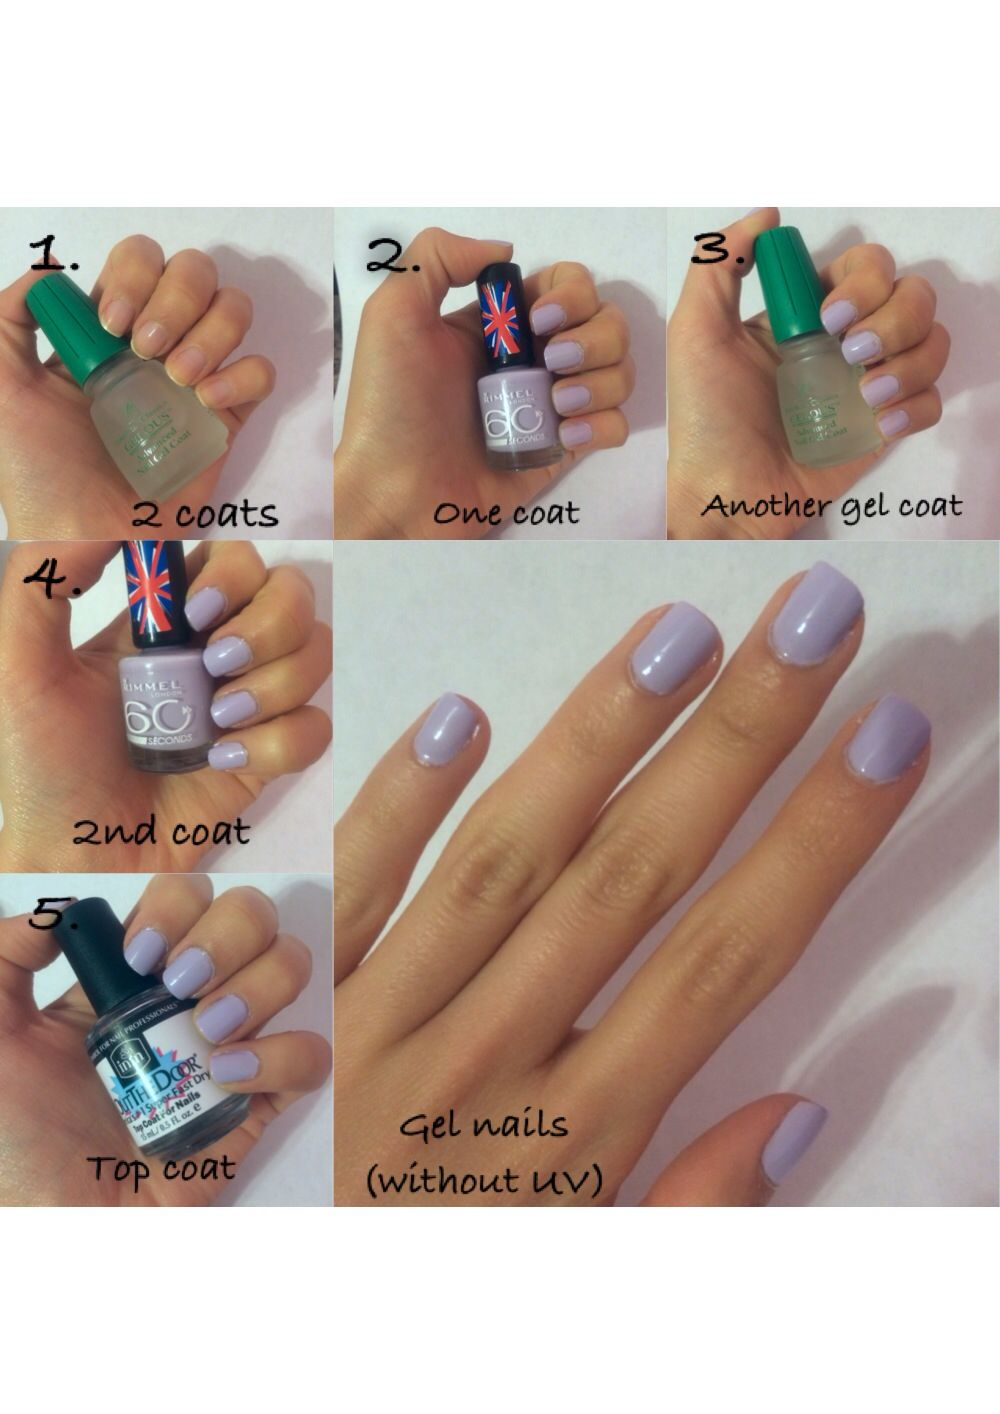 oz dp coat doors the hologram door amazon lights top com silver nail polish out beauty northern